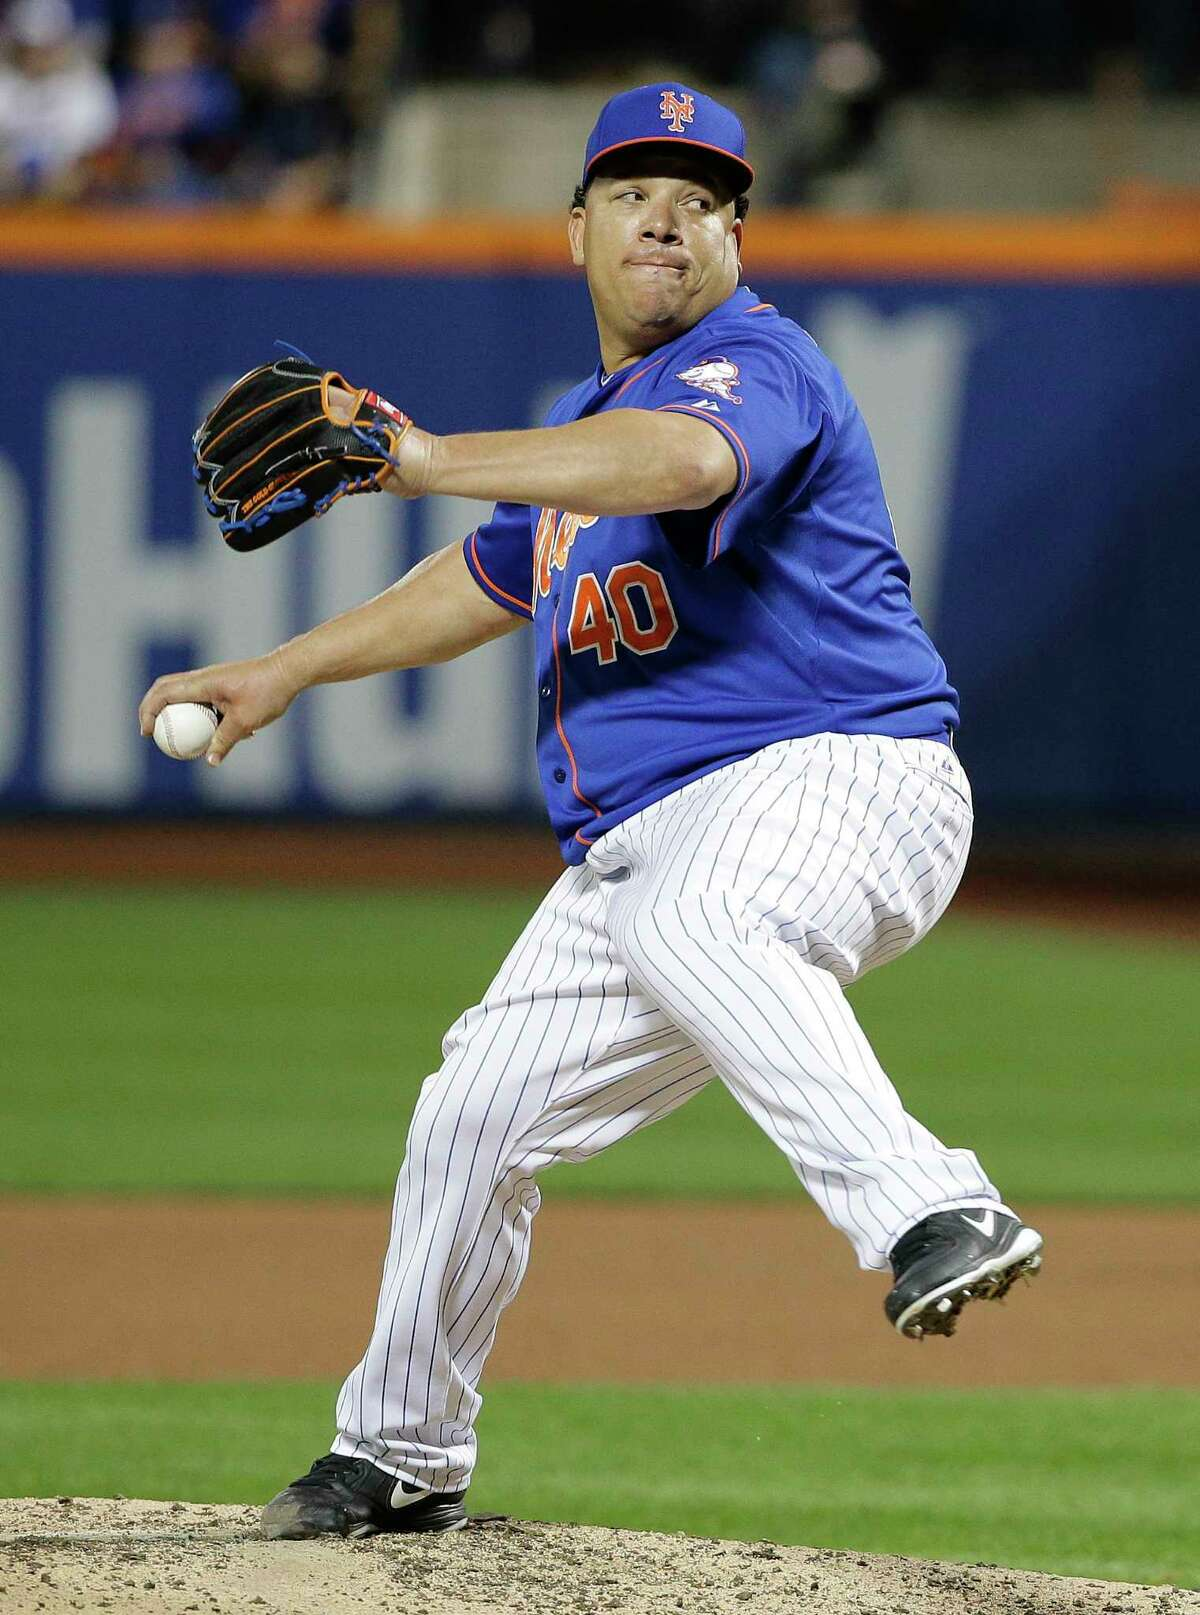 The New York Mets re-signed starter Bartolo Colon to a $7.25 million, one-year contract.